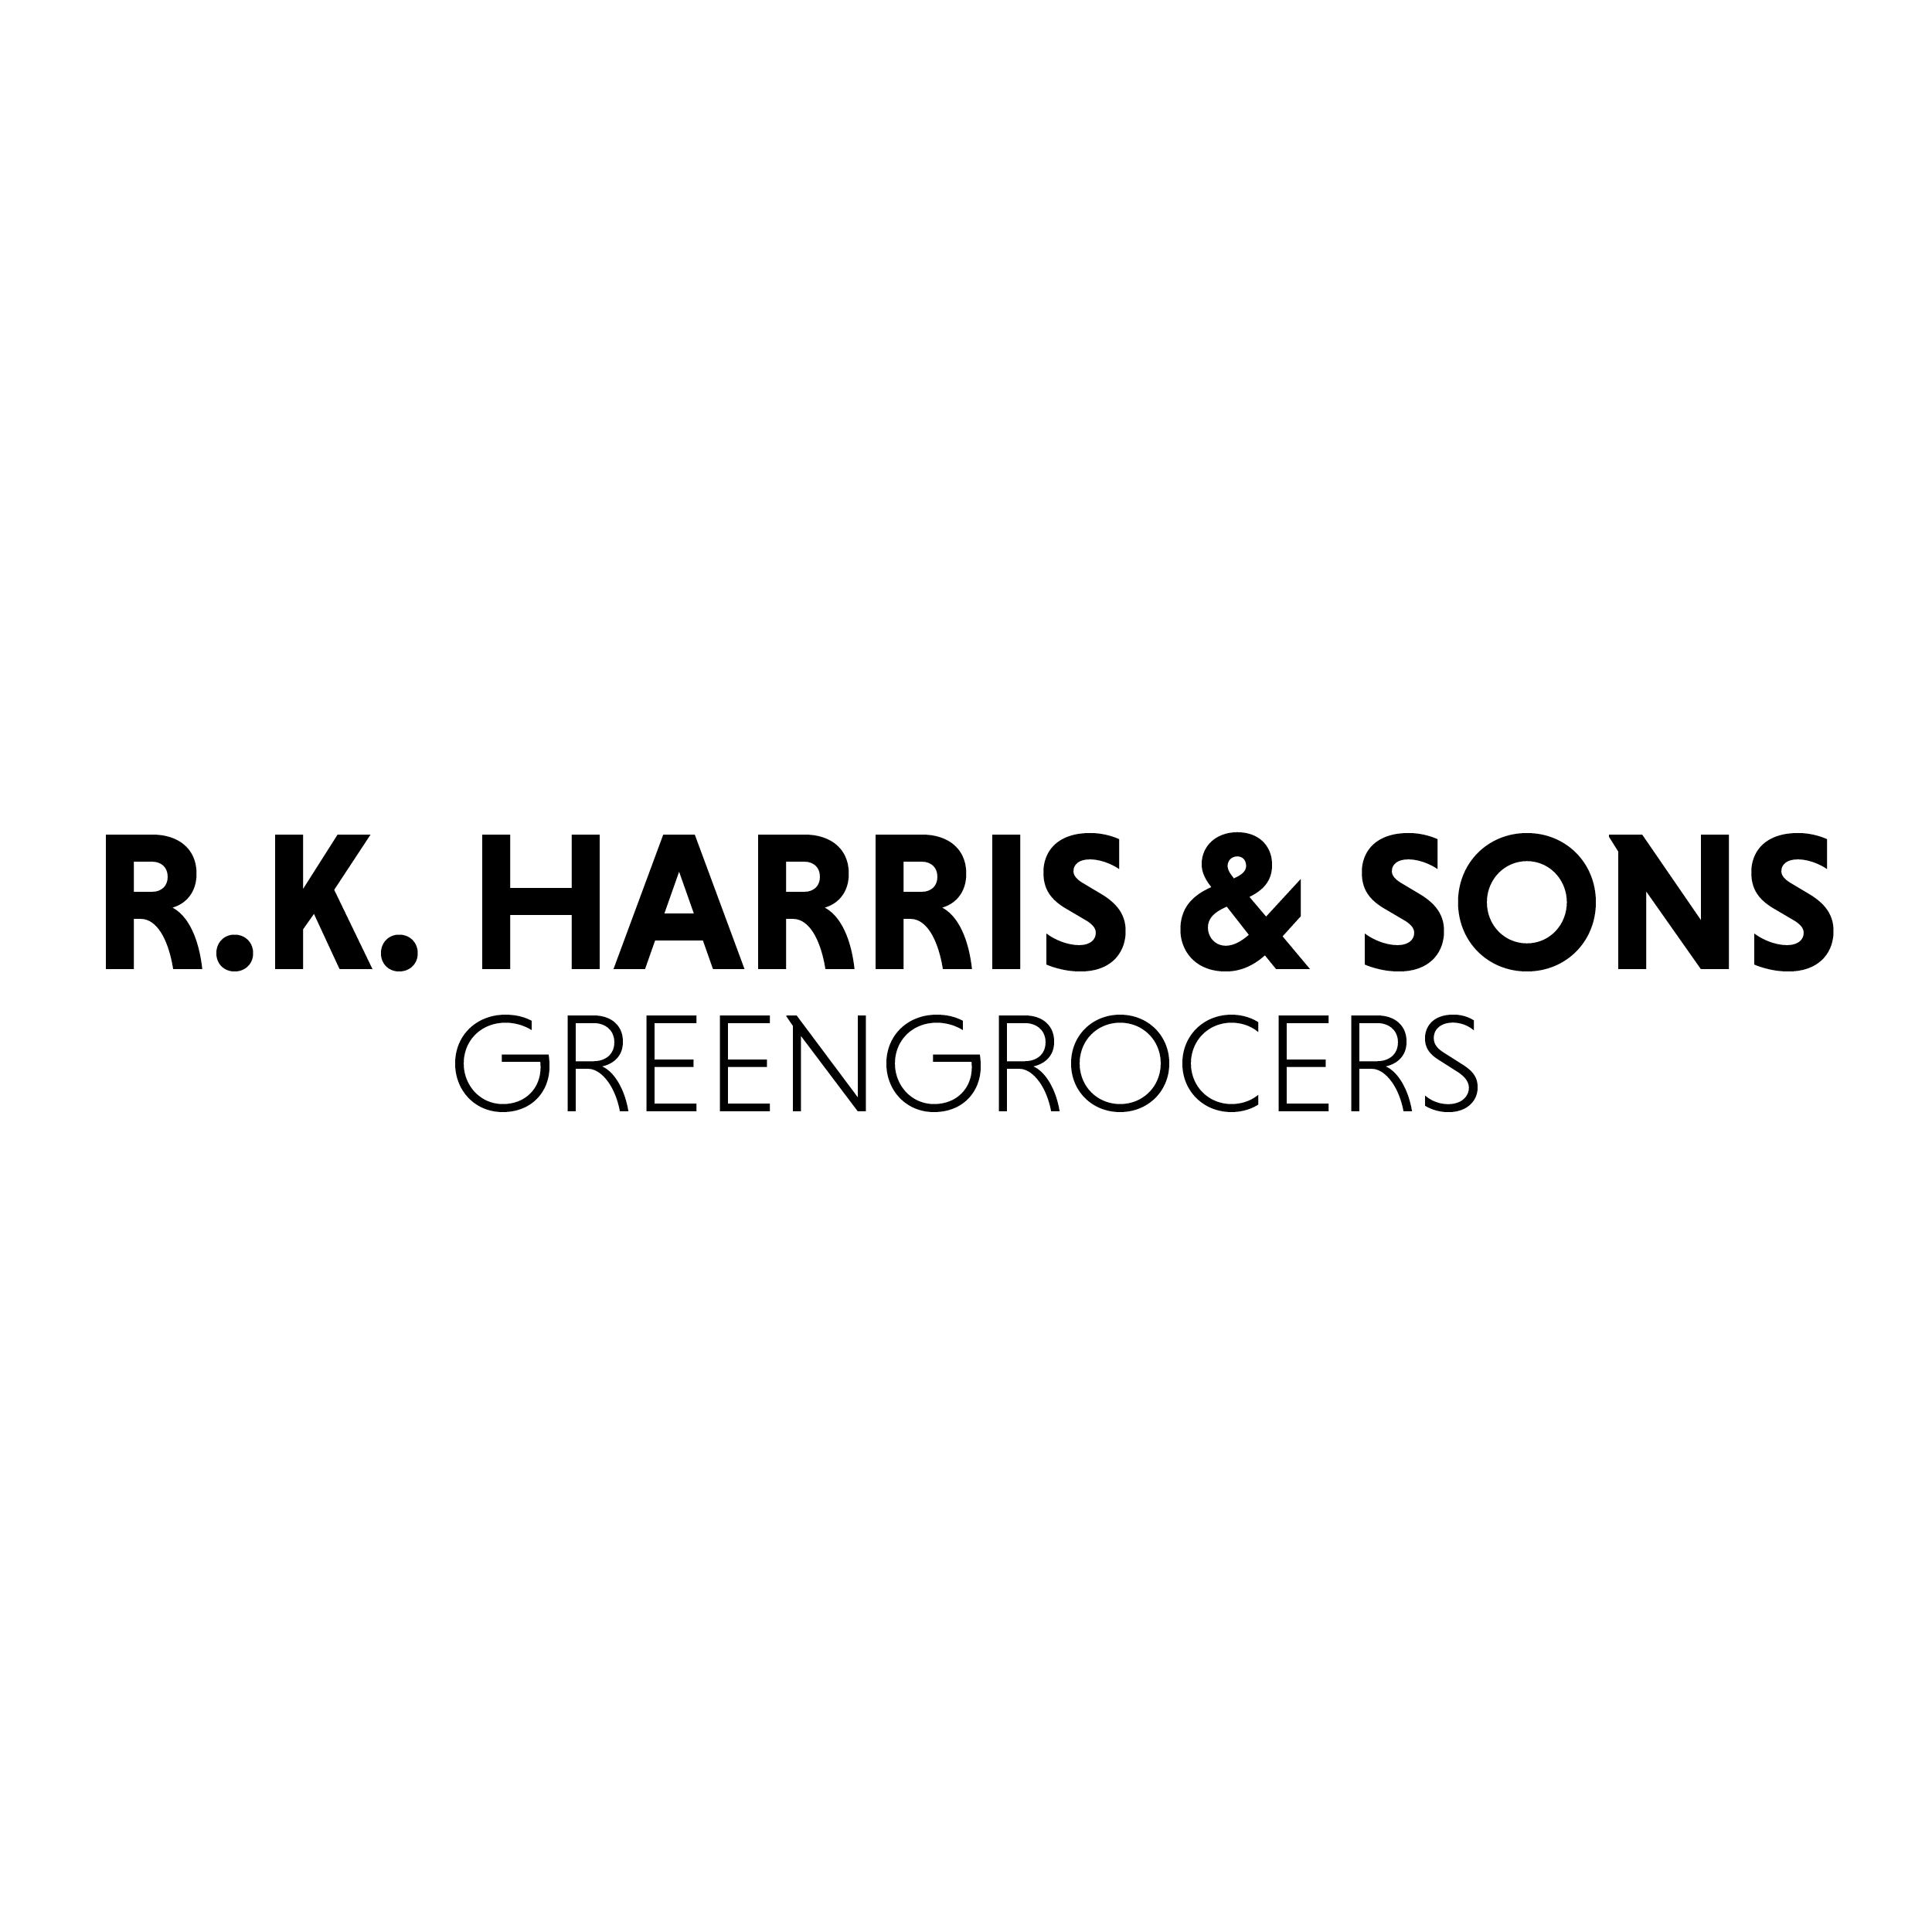 R.K. Harris & Sons Greengrocers